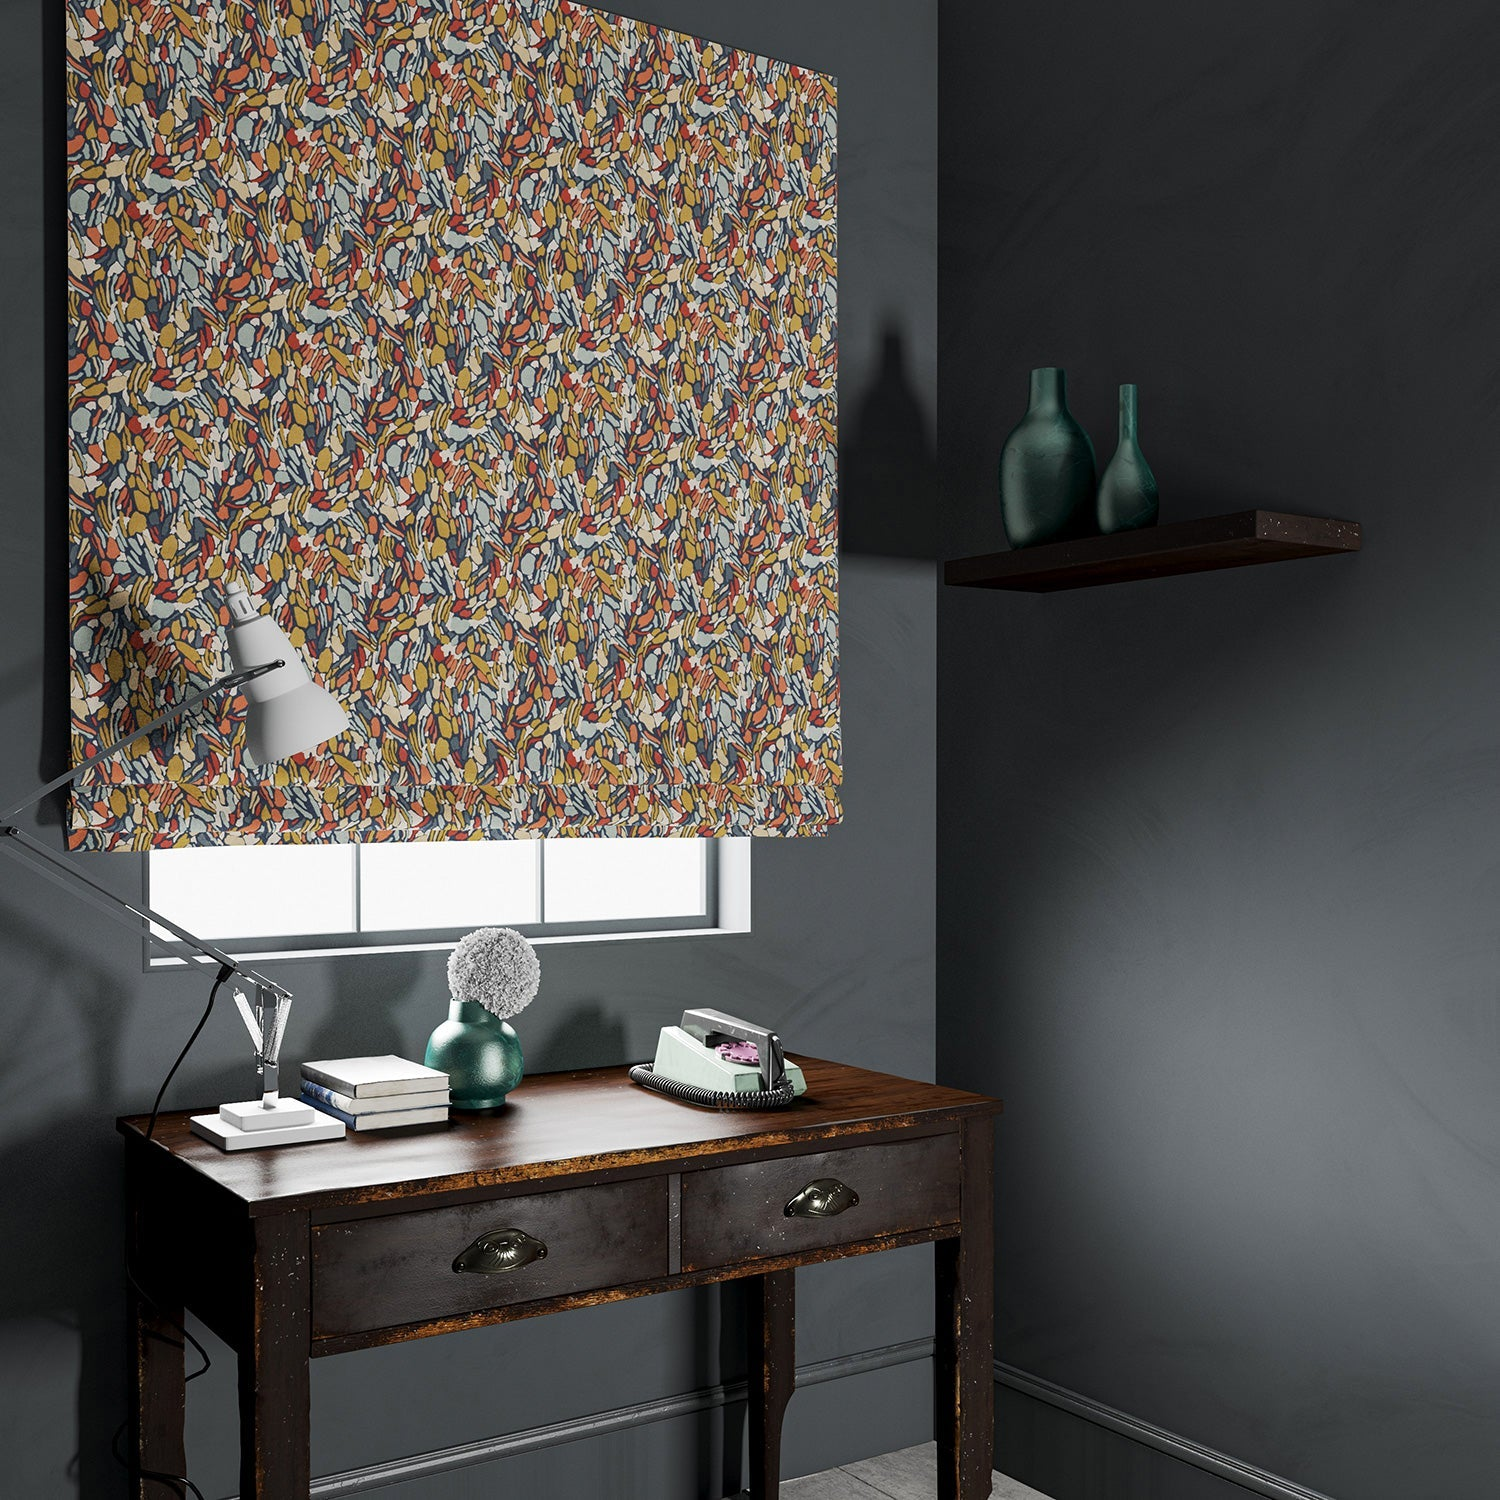 Blind in a velvet fabric with a abstract multicoloured design